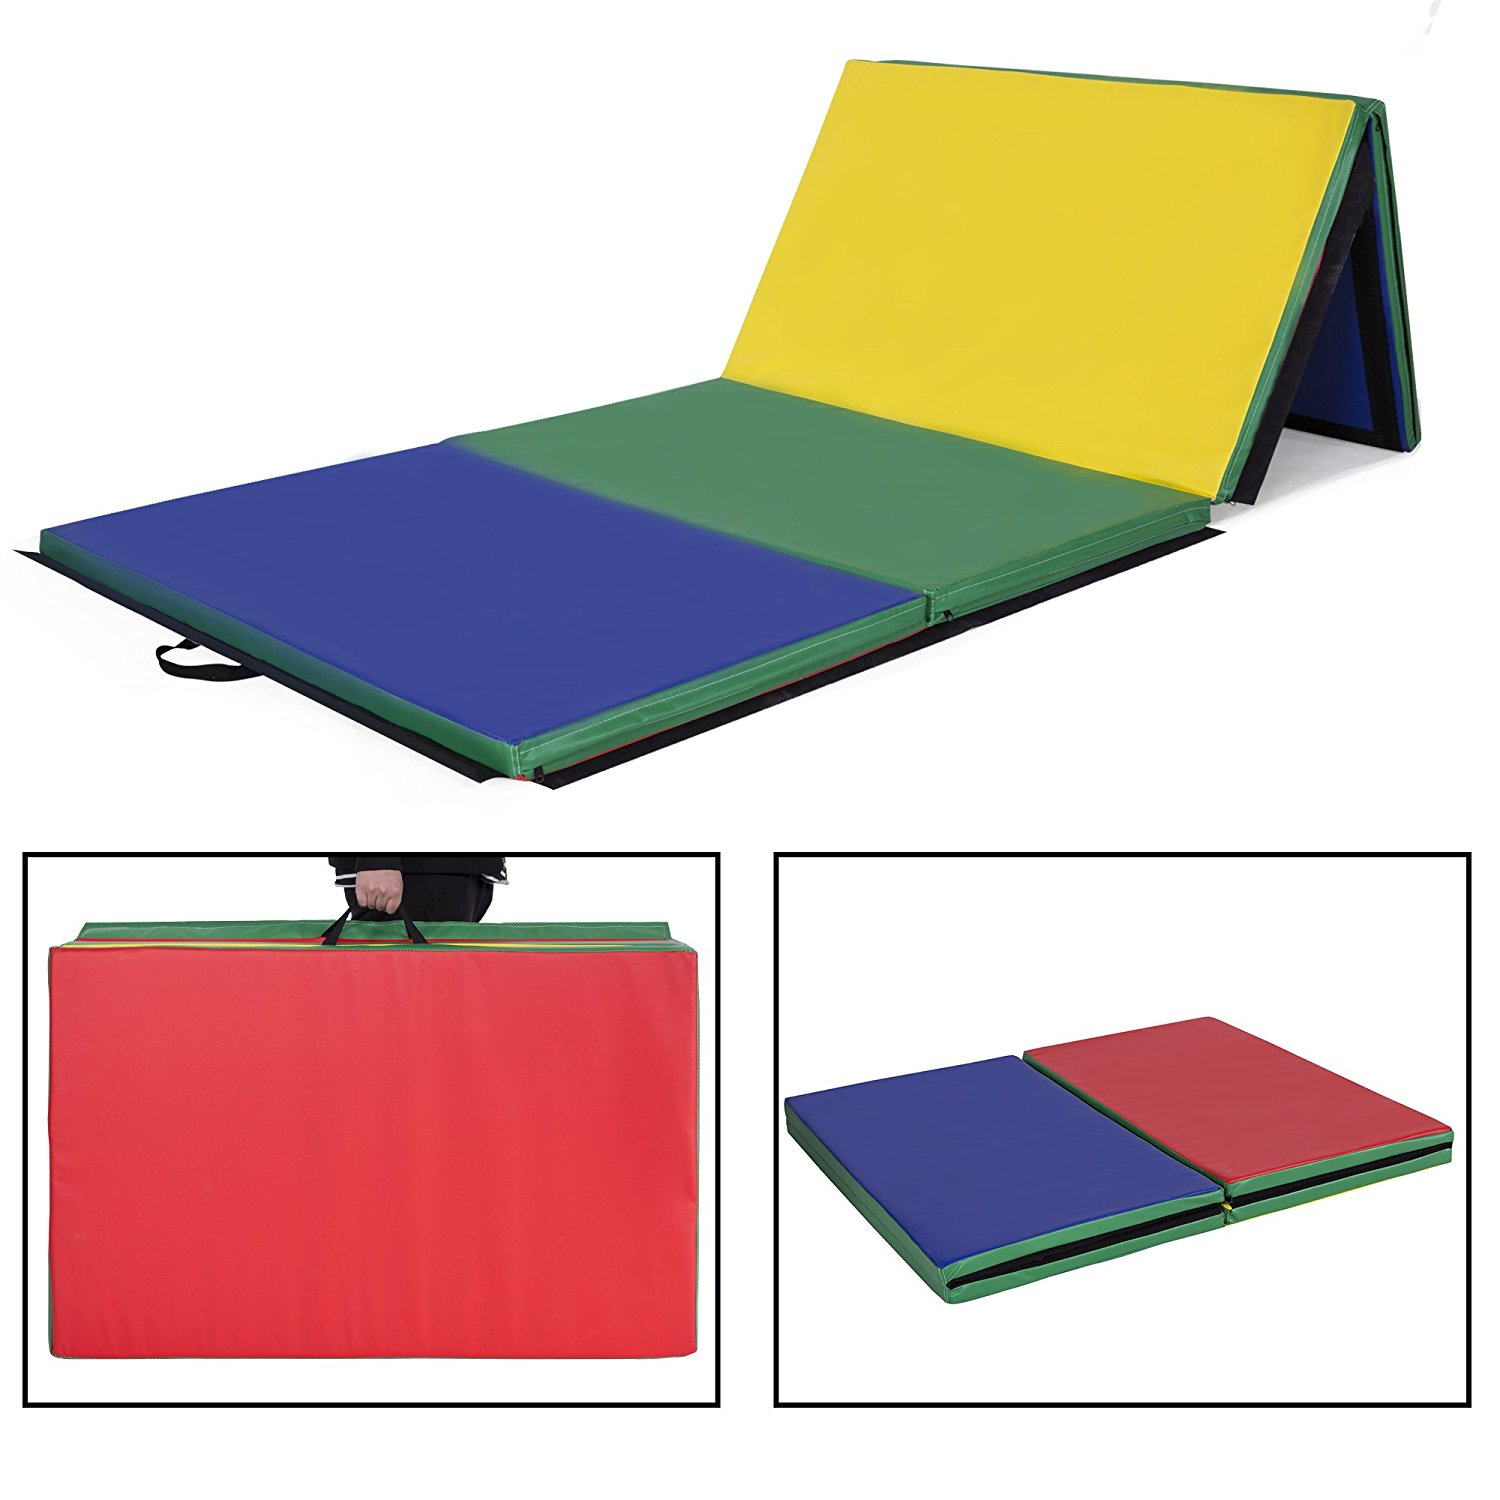 use net for best mats choice folding products home bestchoiceproducts allaboutyouth rakuten mat gymnastics